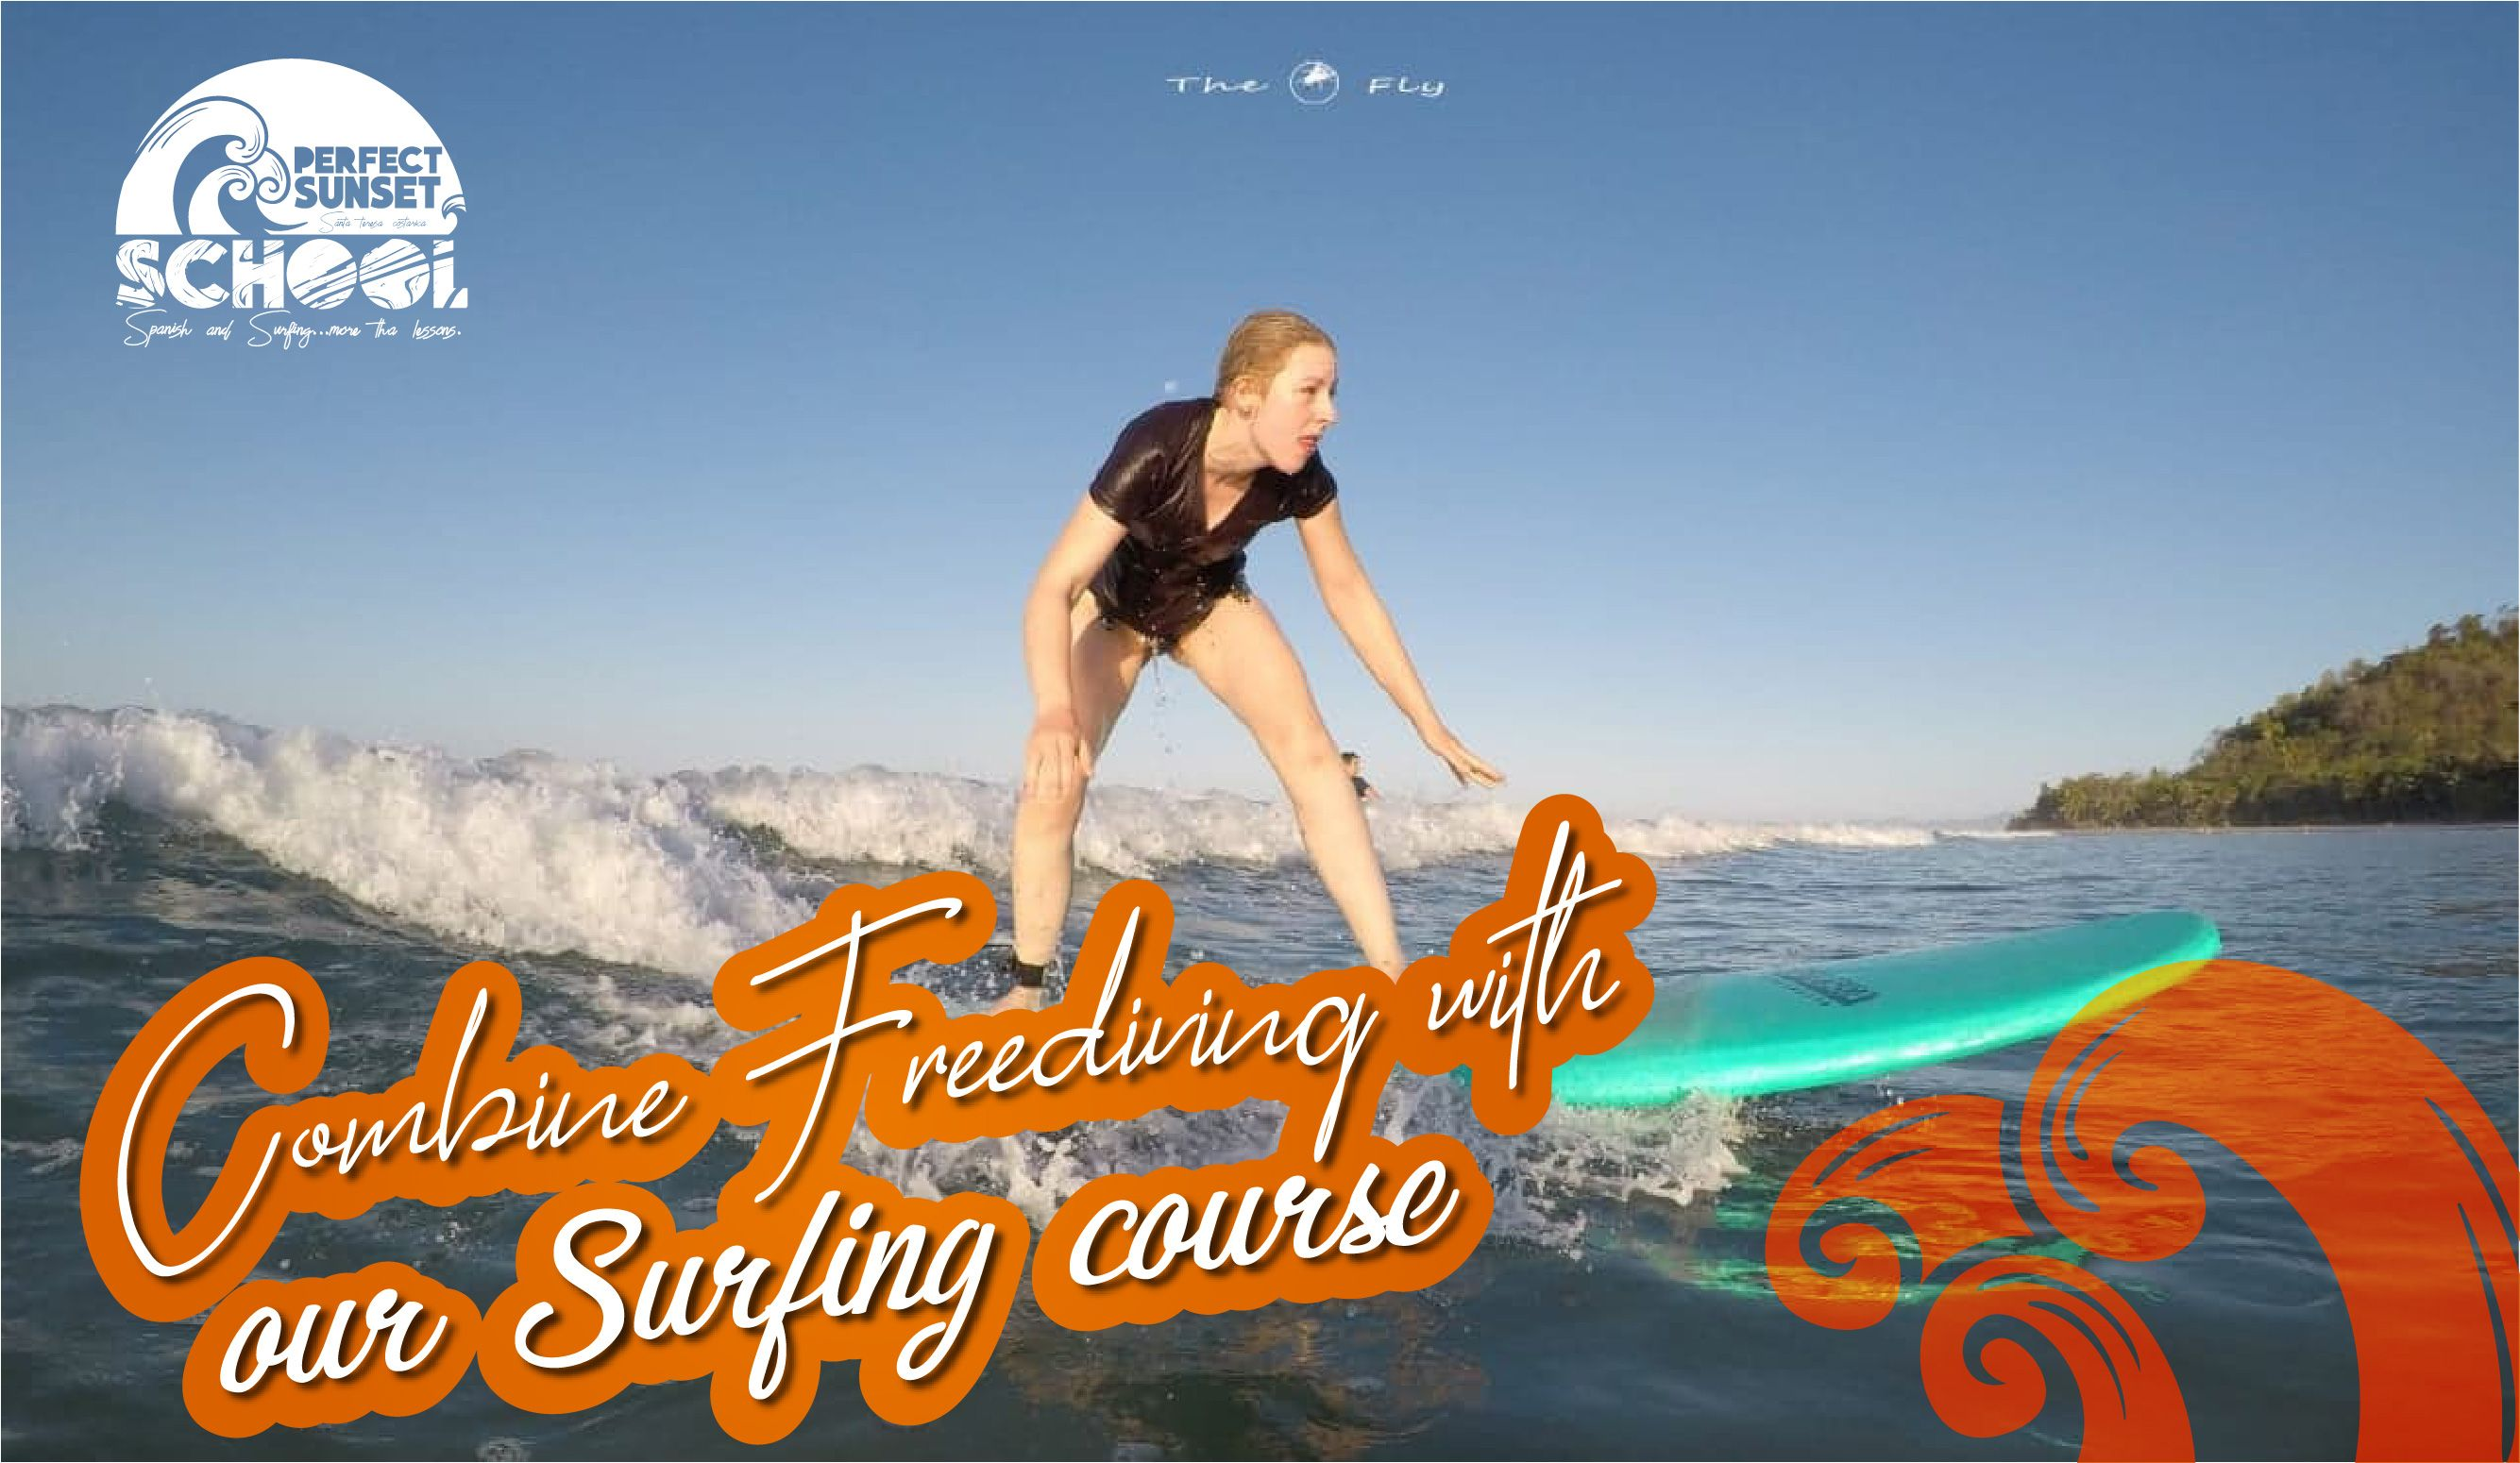 combine freediving with our surfing course